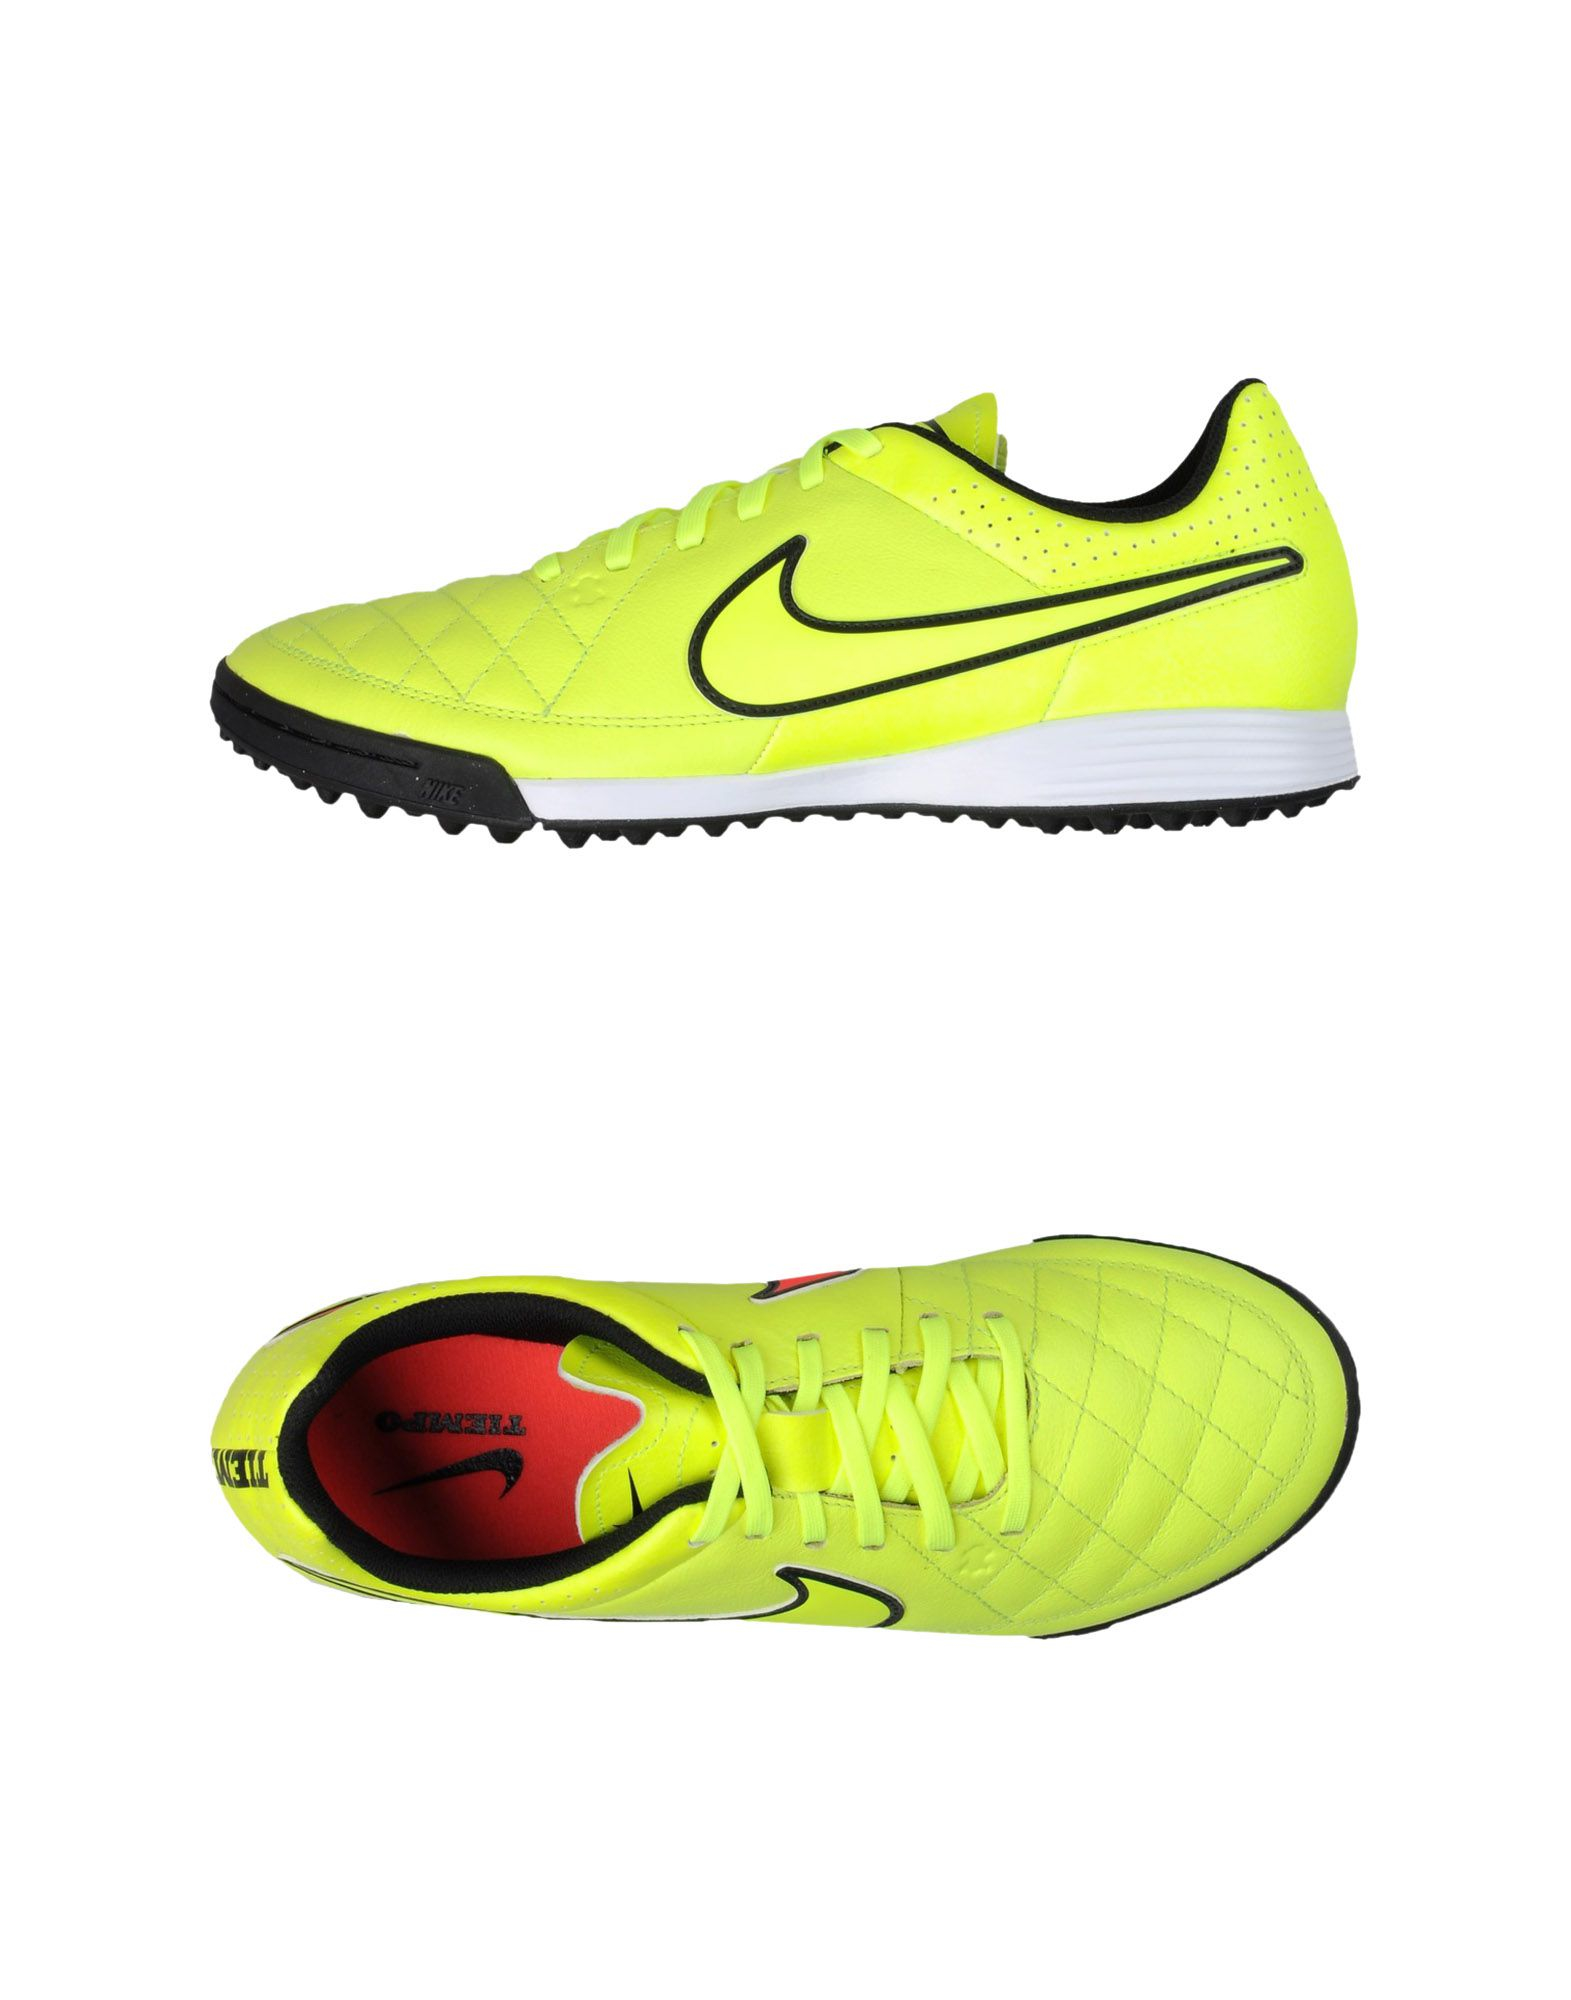 Nike Low Tops Amp Trainers In Yellow For Men Lyst